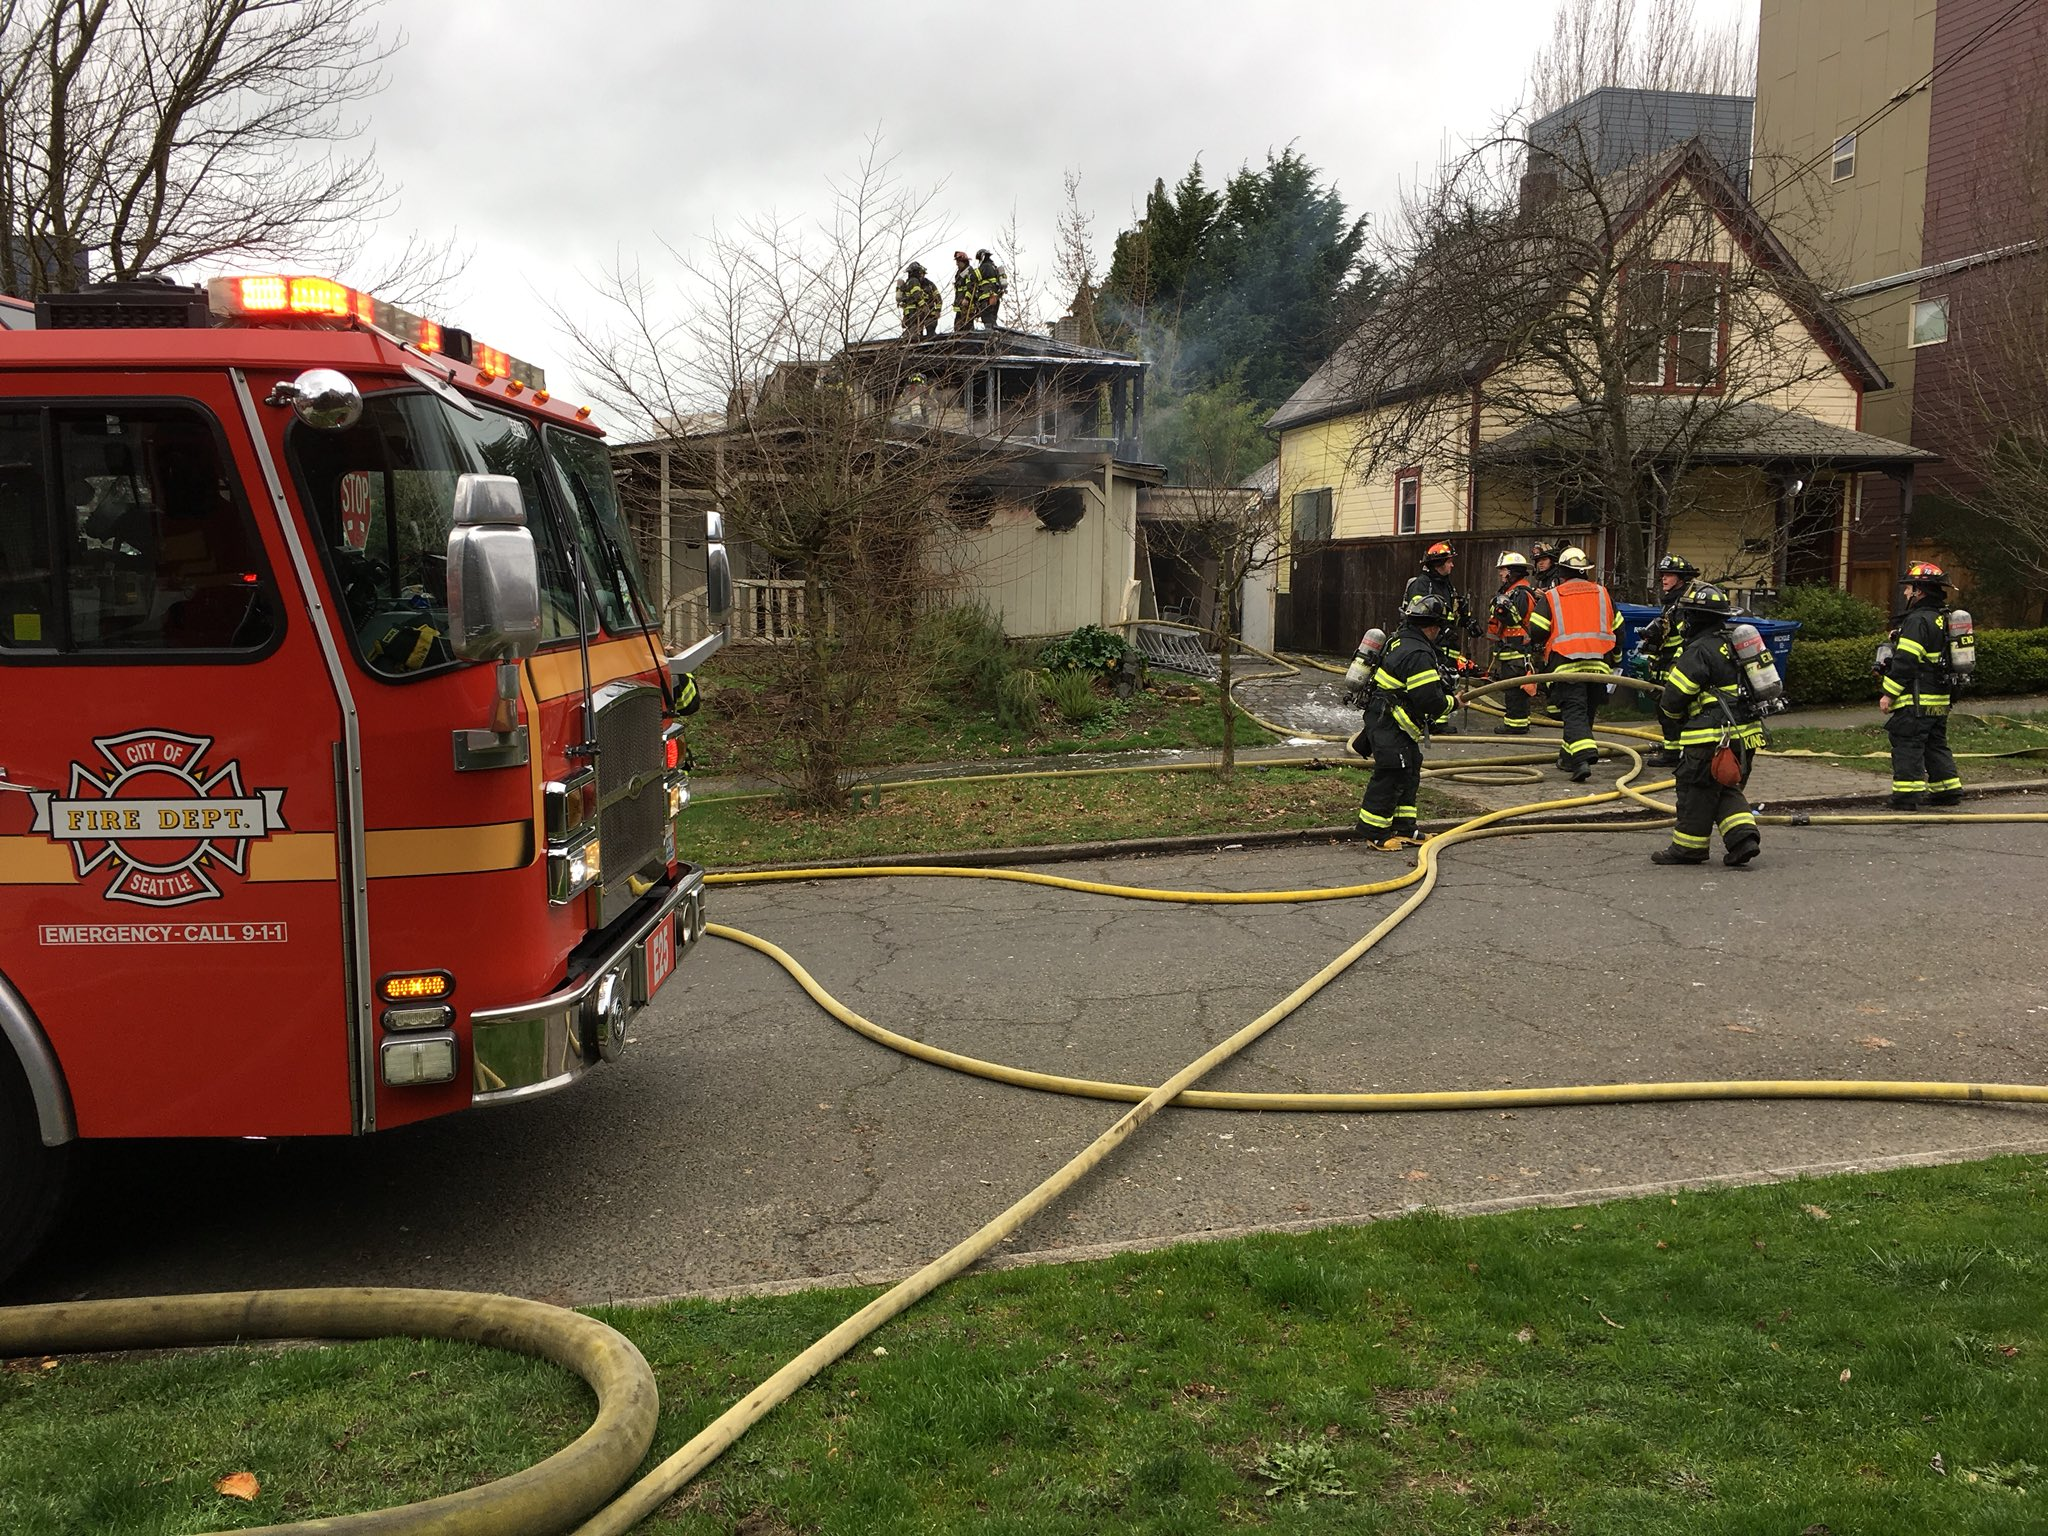 Seattle Firefighters douse a blaze at a building near Seattle University (Photo: KOMO News)<p></p>